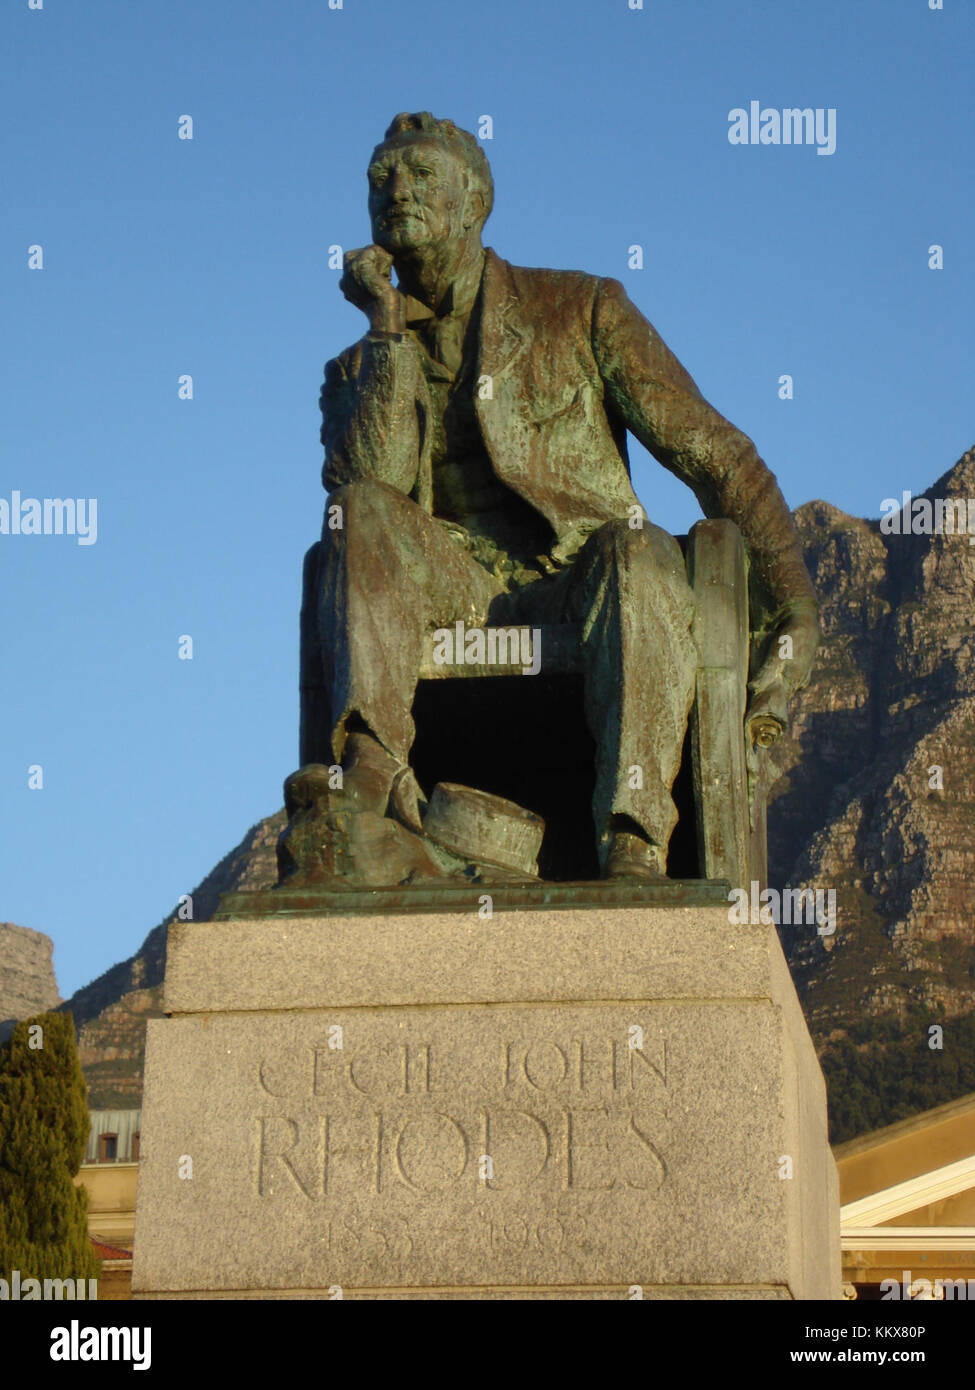 Statue of Cecil John Rhodes at UCT (5829551829) - Stock Image